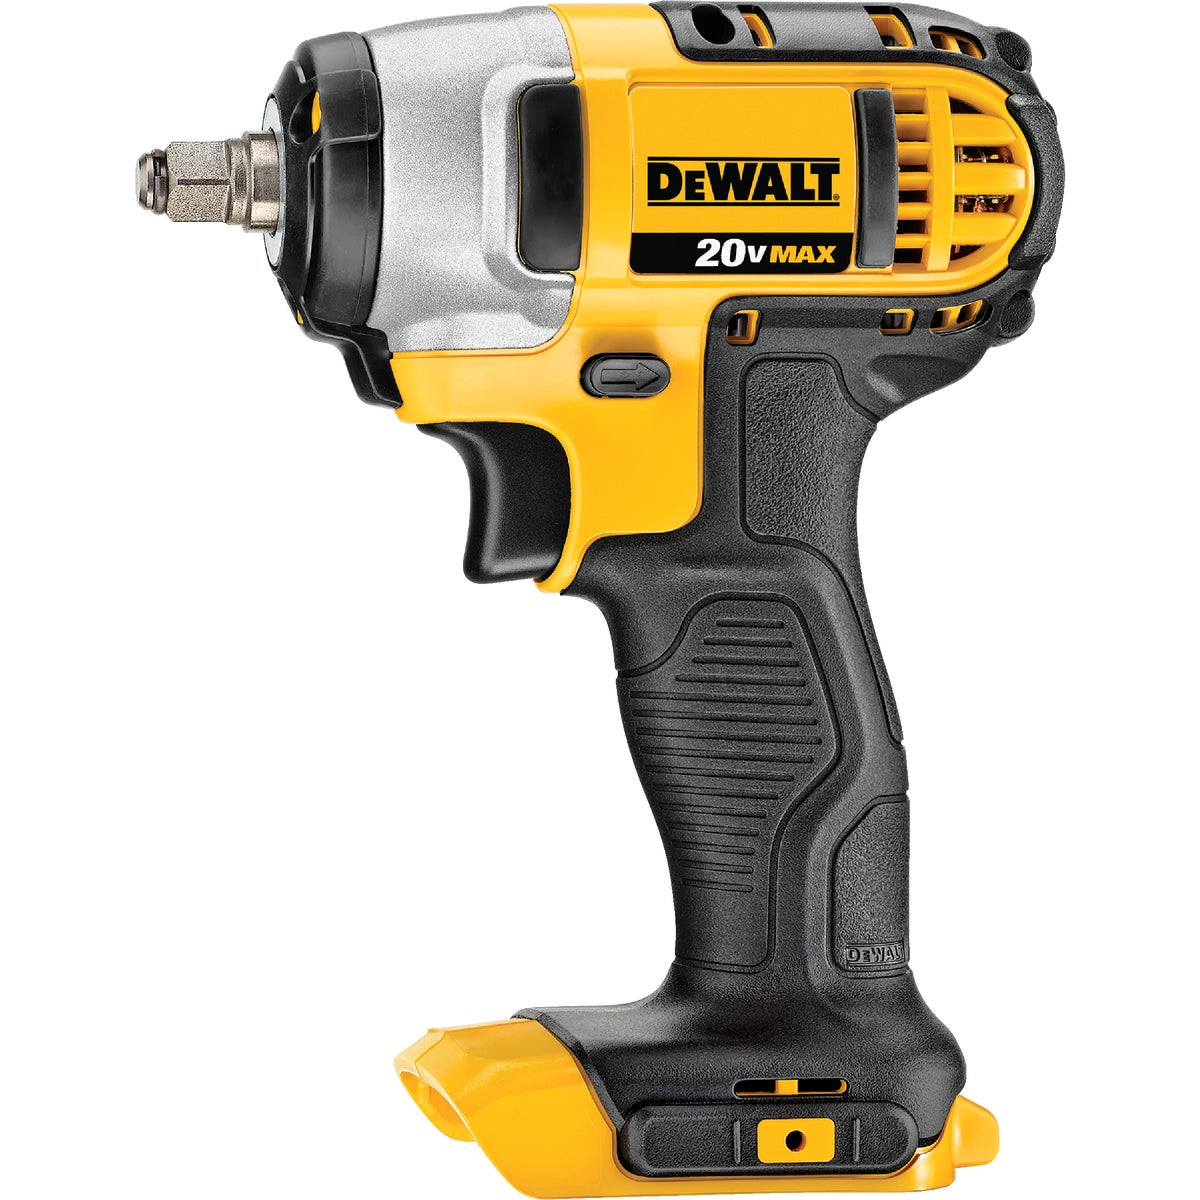 20V BARE IMPACT WRENCH